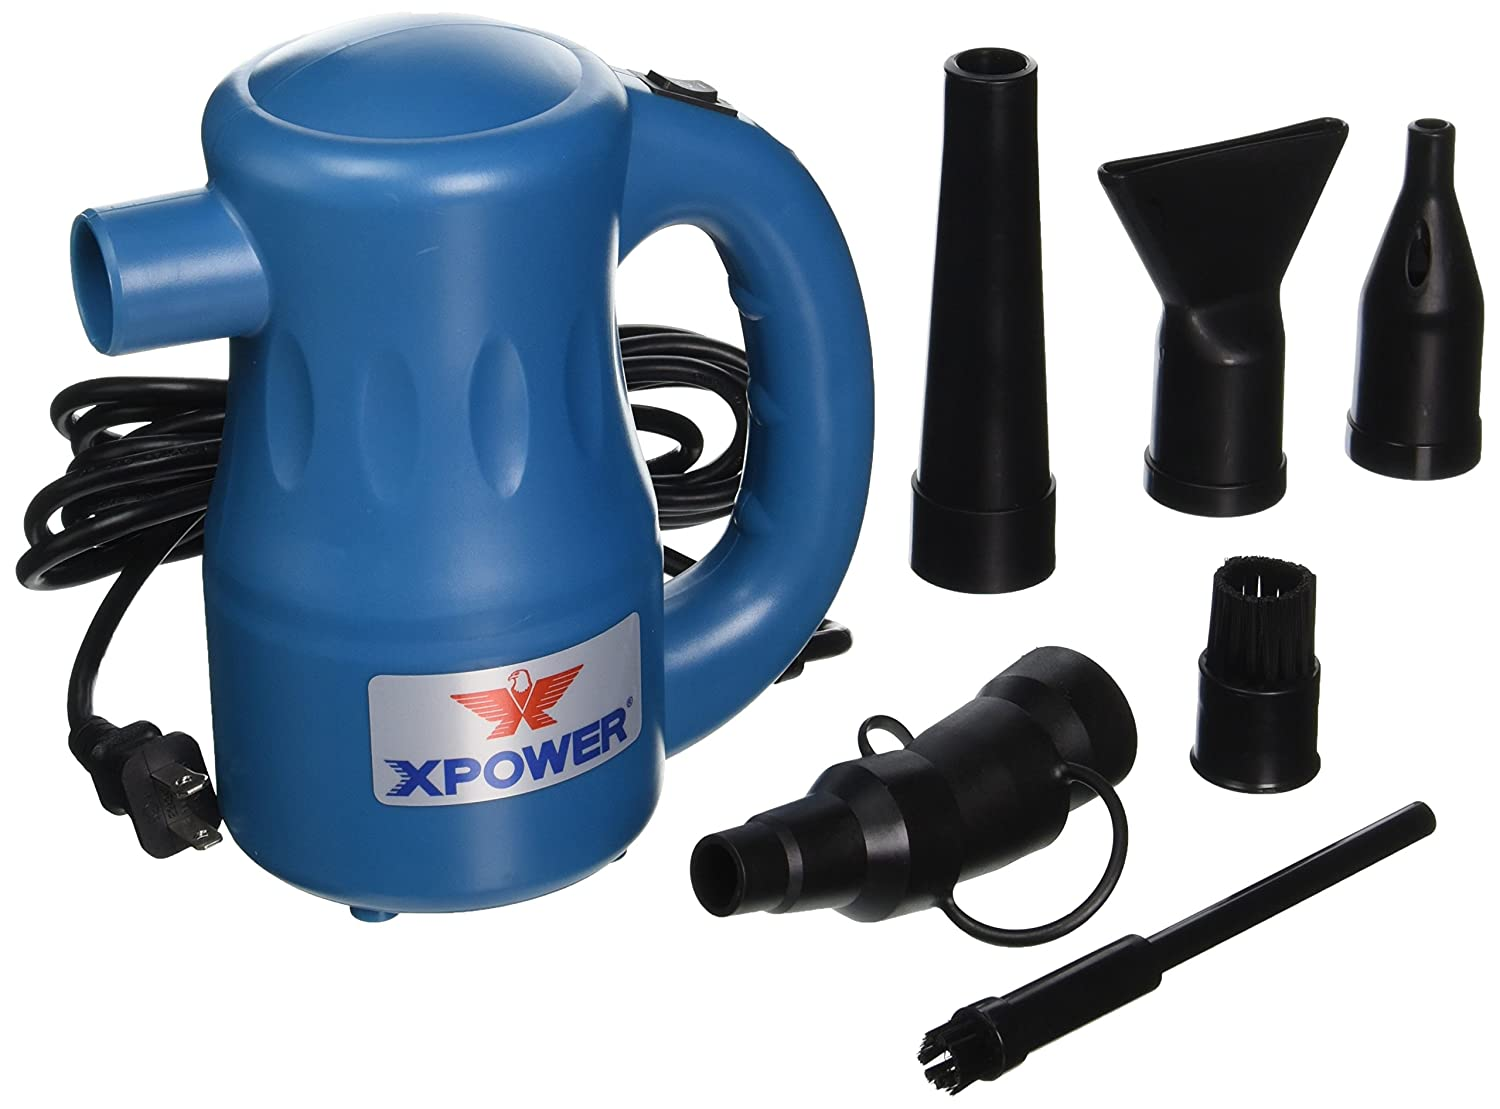 XPOWER A-2 Airrow Pro Multi-Use Electric Computer Duster Dryer Air Pump Blower - Blue (A-2-FBA) XPOWER Manufacture Inc.